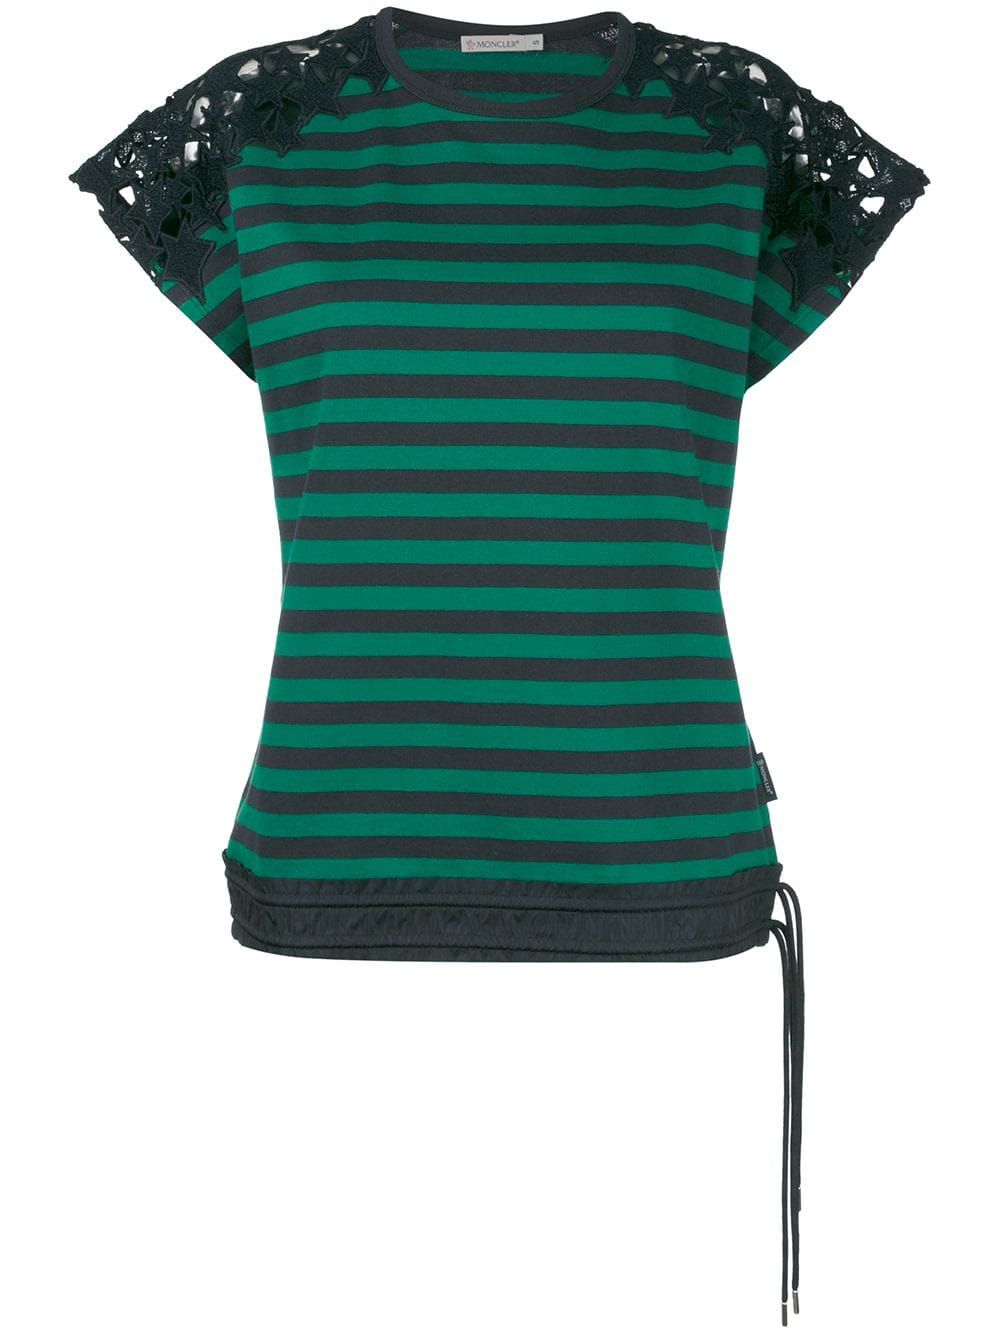 9534b9ddf Moncler striped T-shirt - Green in 2019 | Products | Striped tee ...